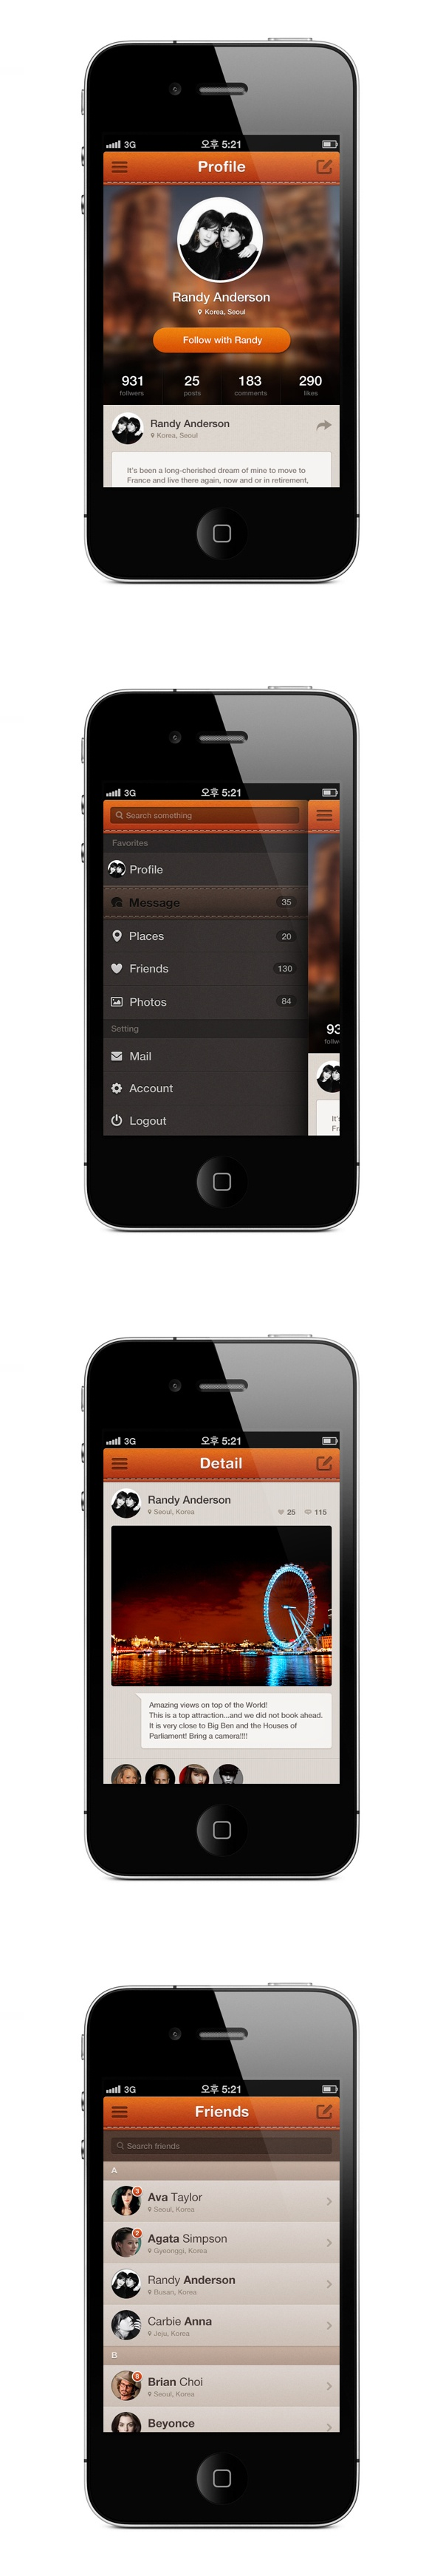 SNS service app for iphone by Ava Choi, via Behance